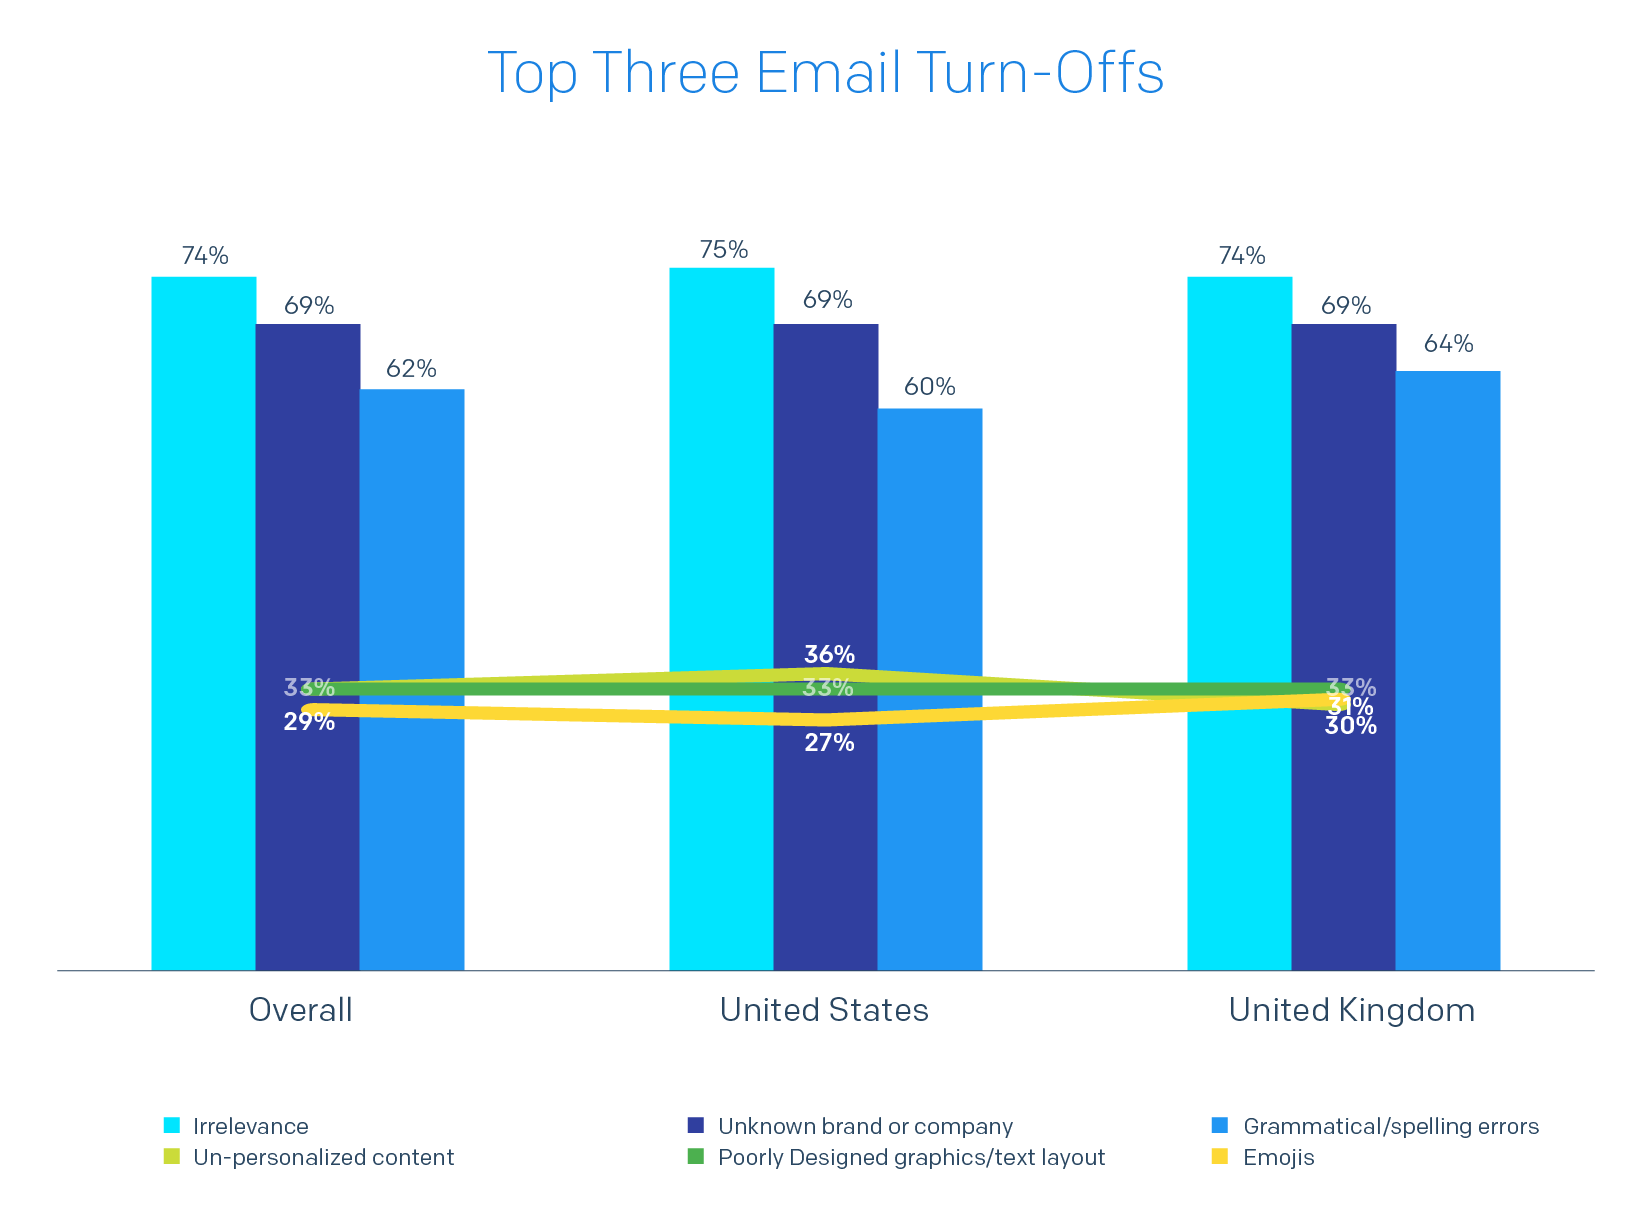 Bar chart of Top Three Email Turn-Offs